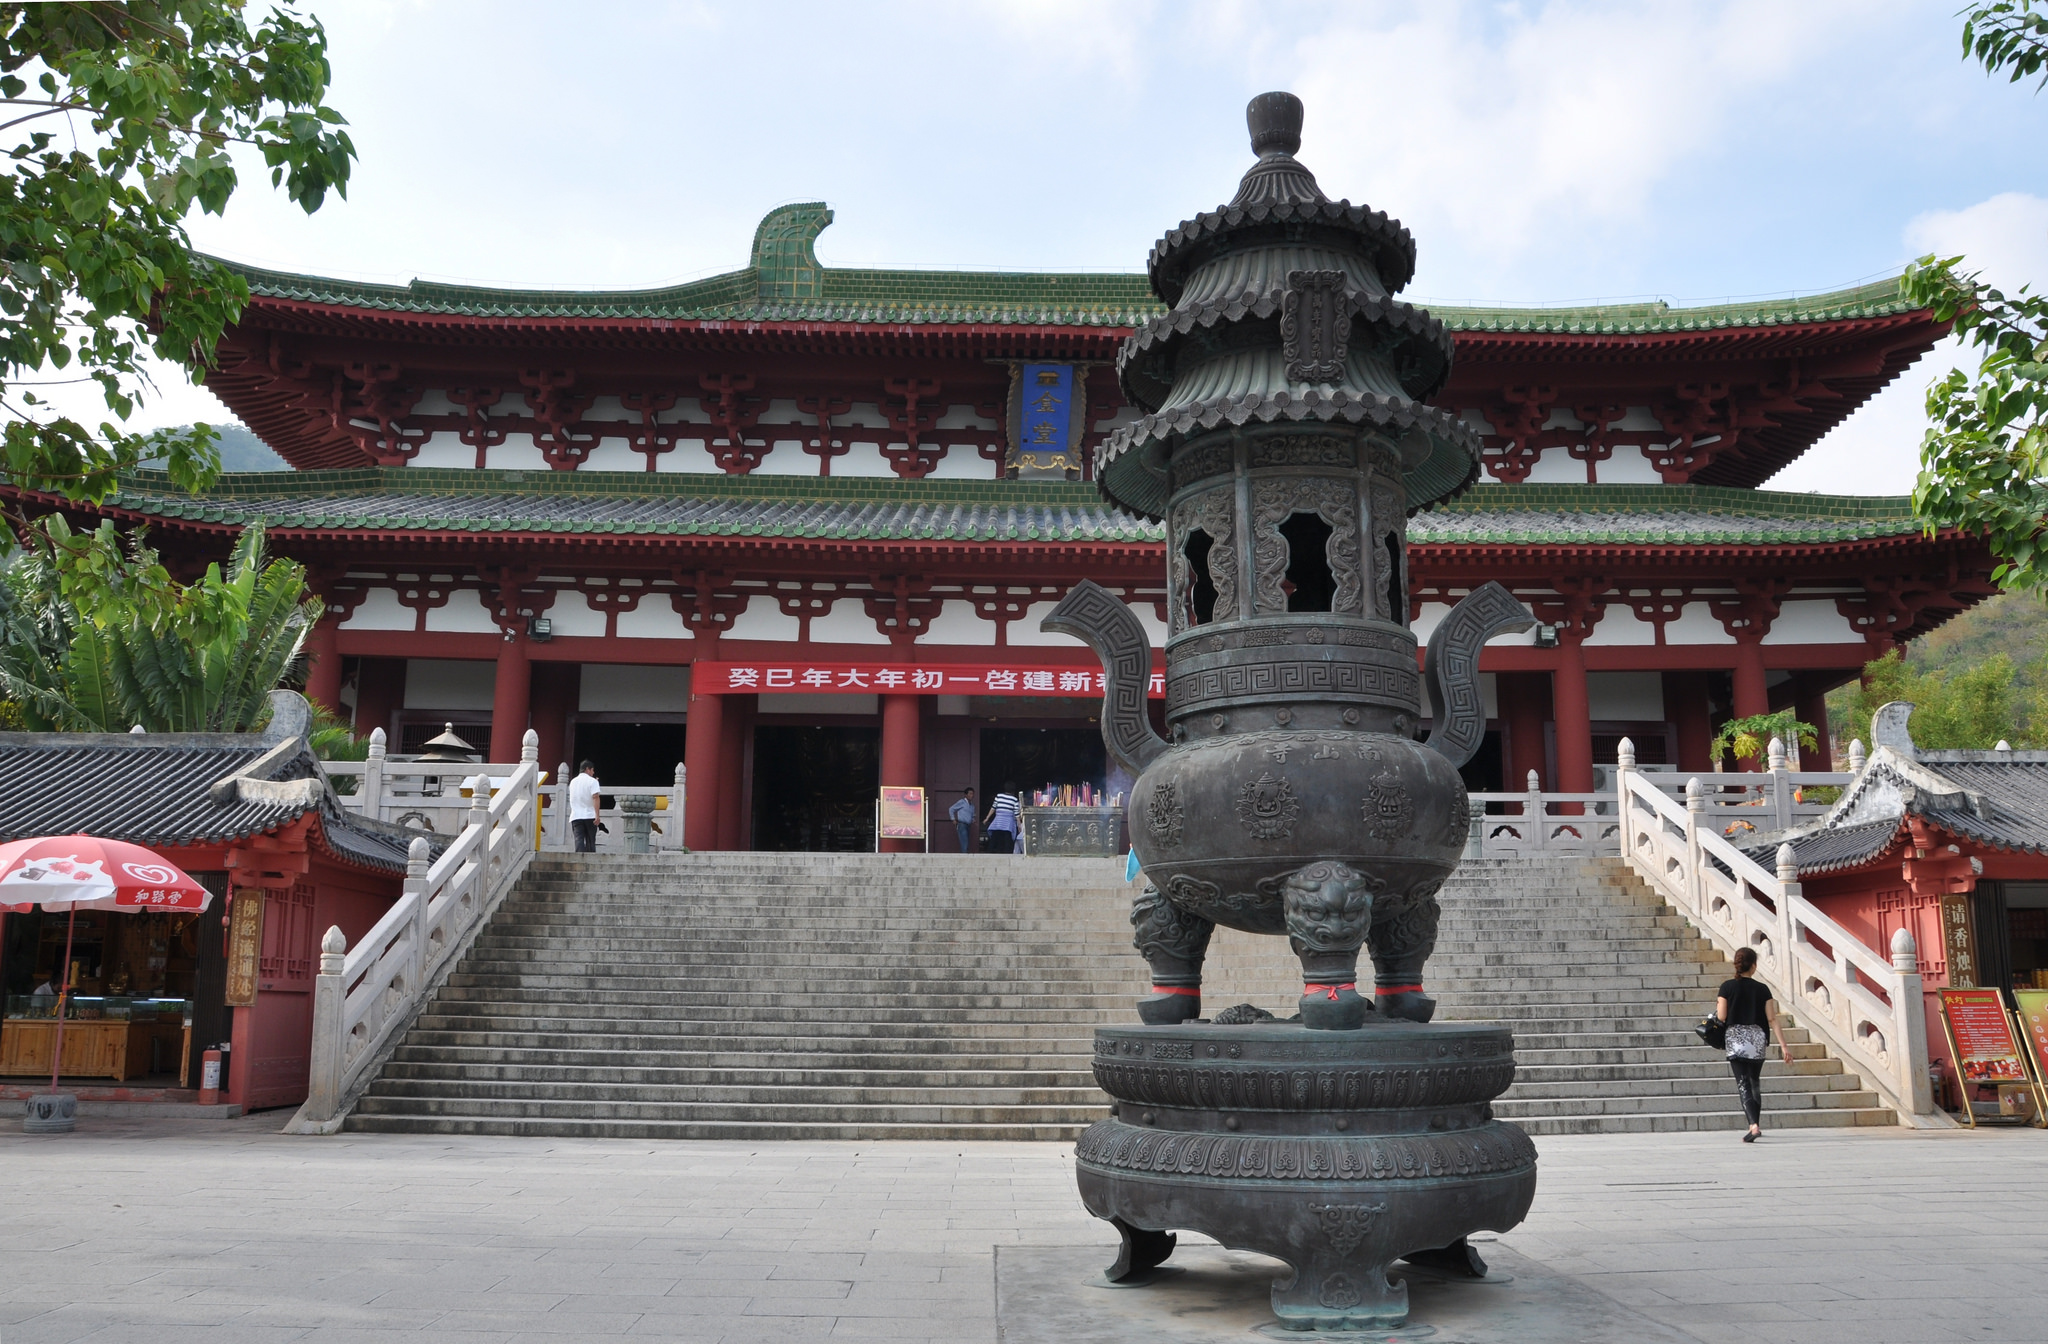 A temple within the Buddhism Culture Park.